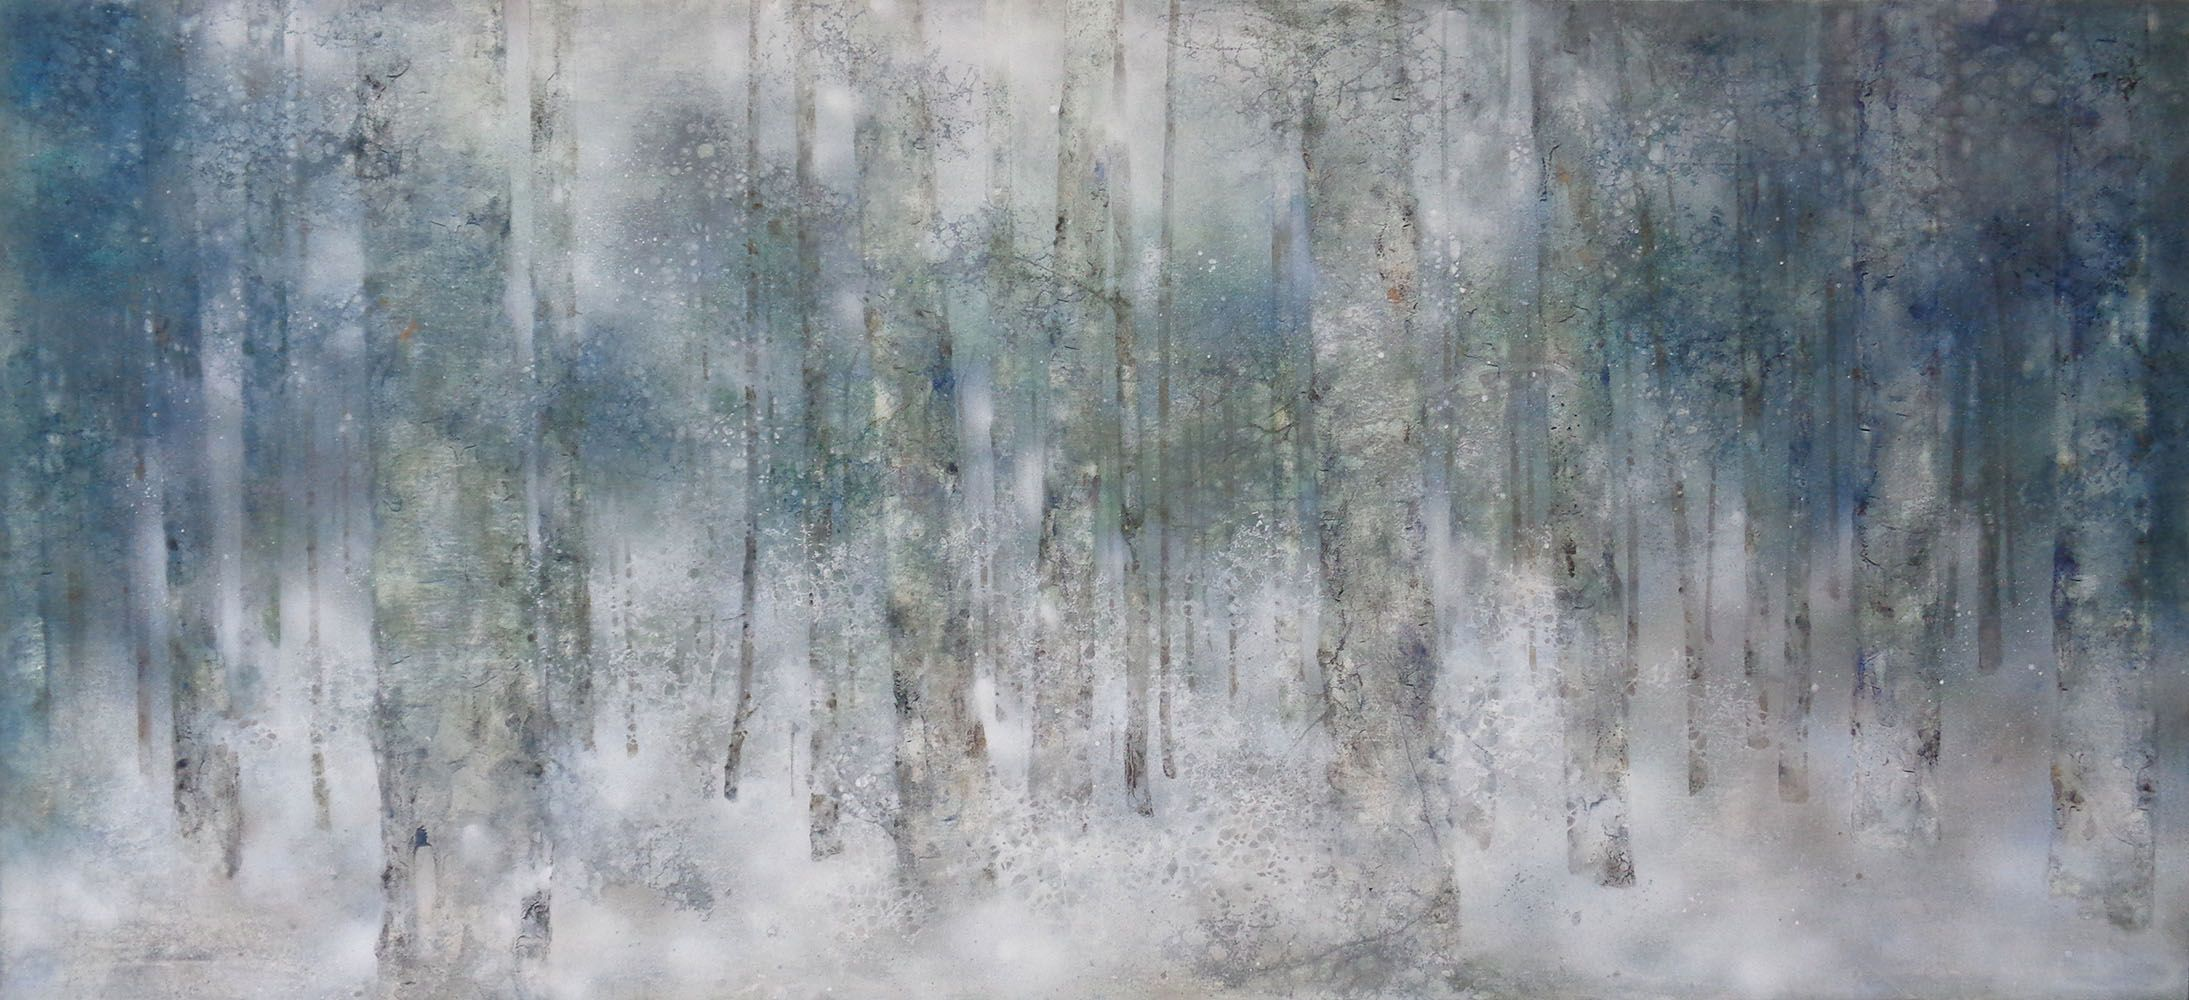 Plenitude II,Chen Yiching,Contemporary painting